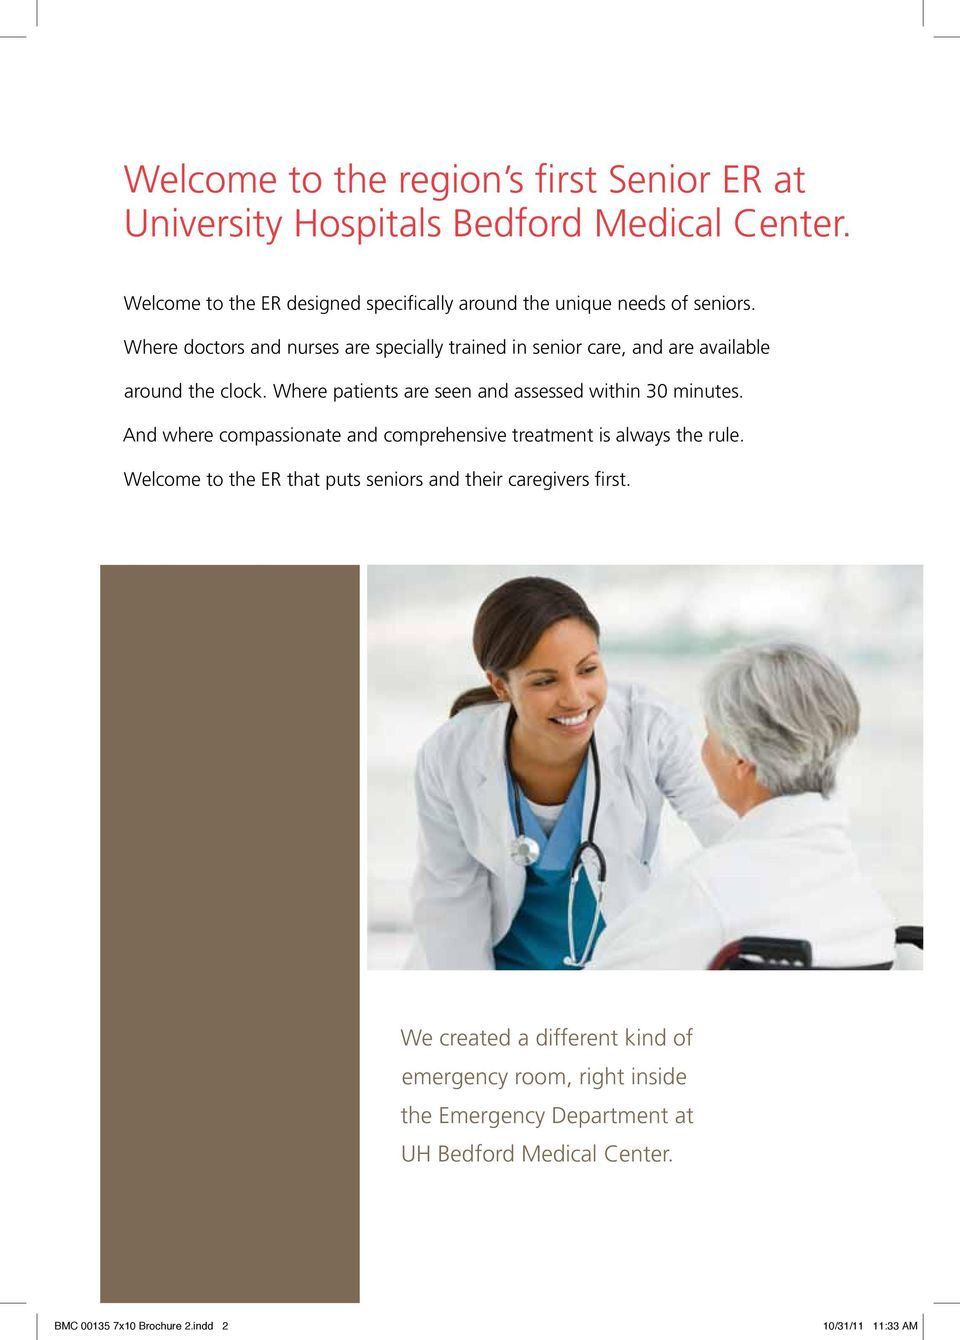 Where doctors and nurses are specially trained in senior care, and are available around the clock.